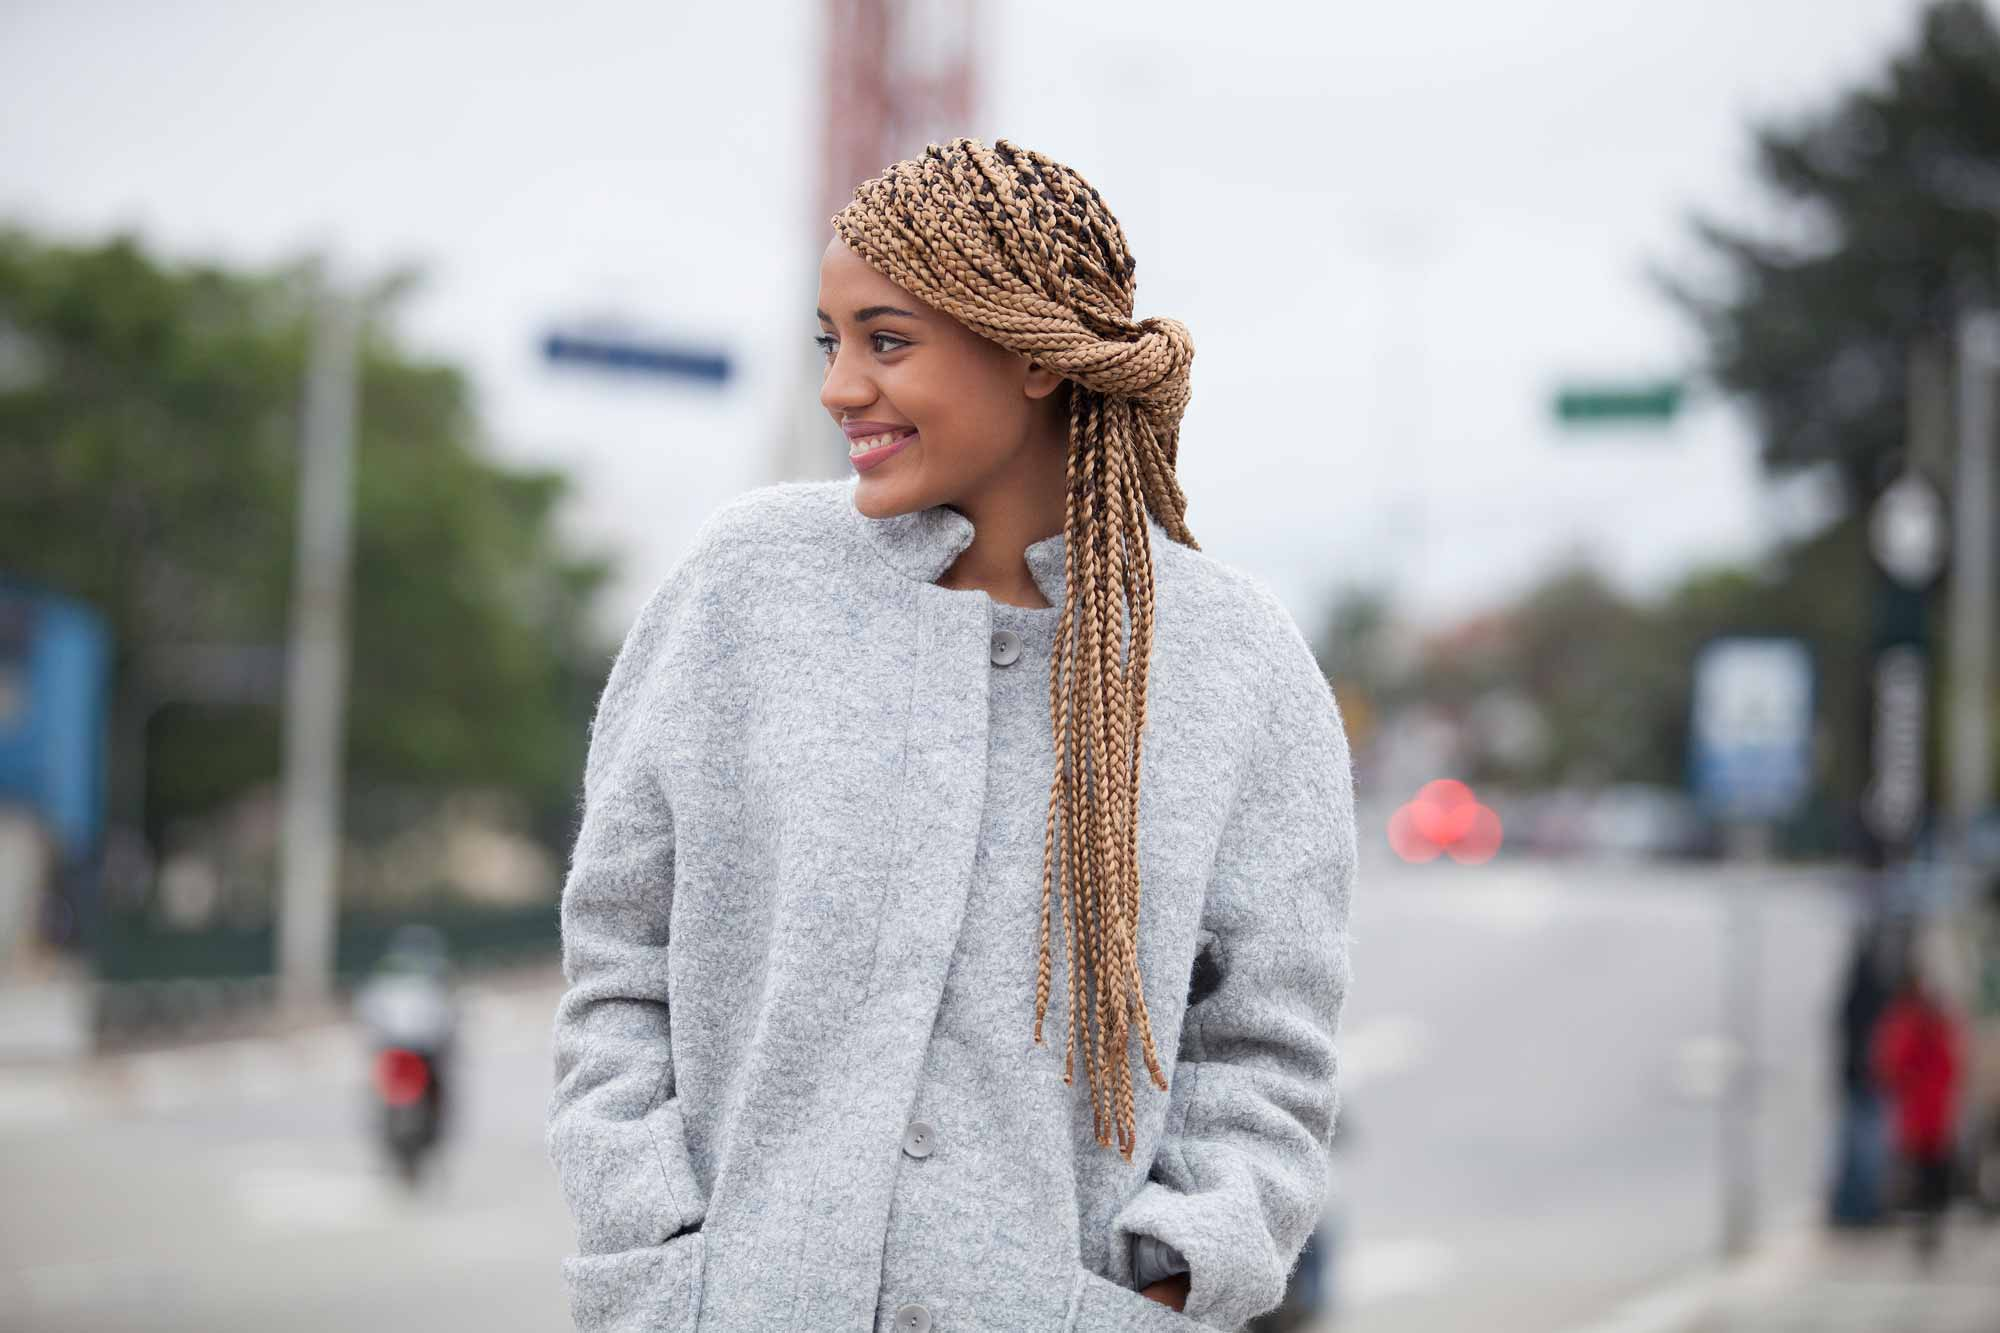 10 Super-Cute Styles With Box Braids To Wear Now